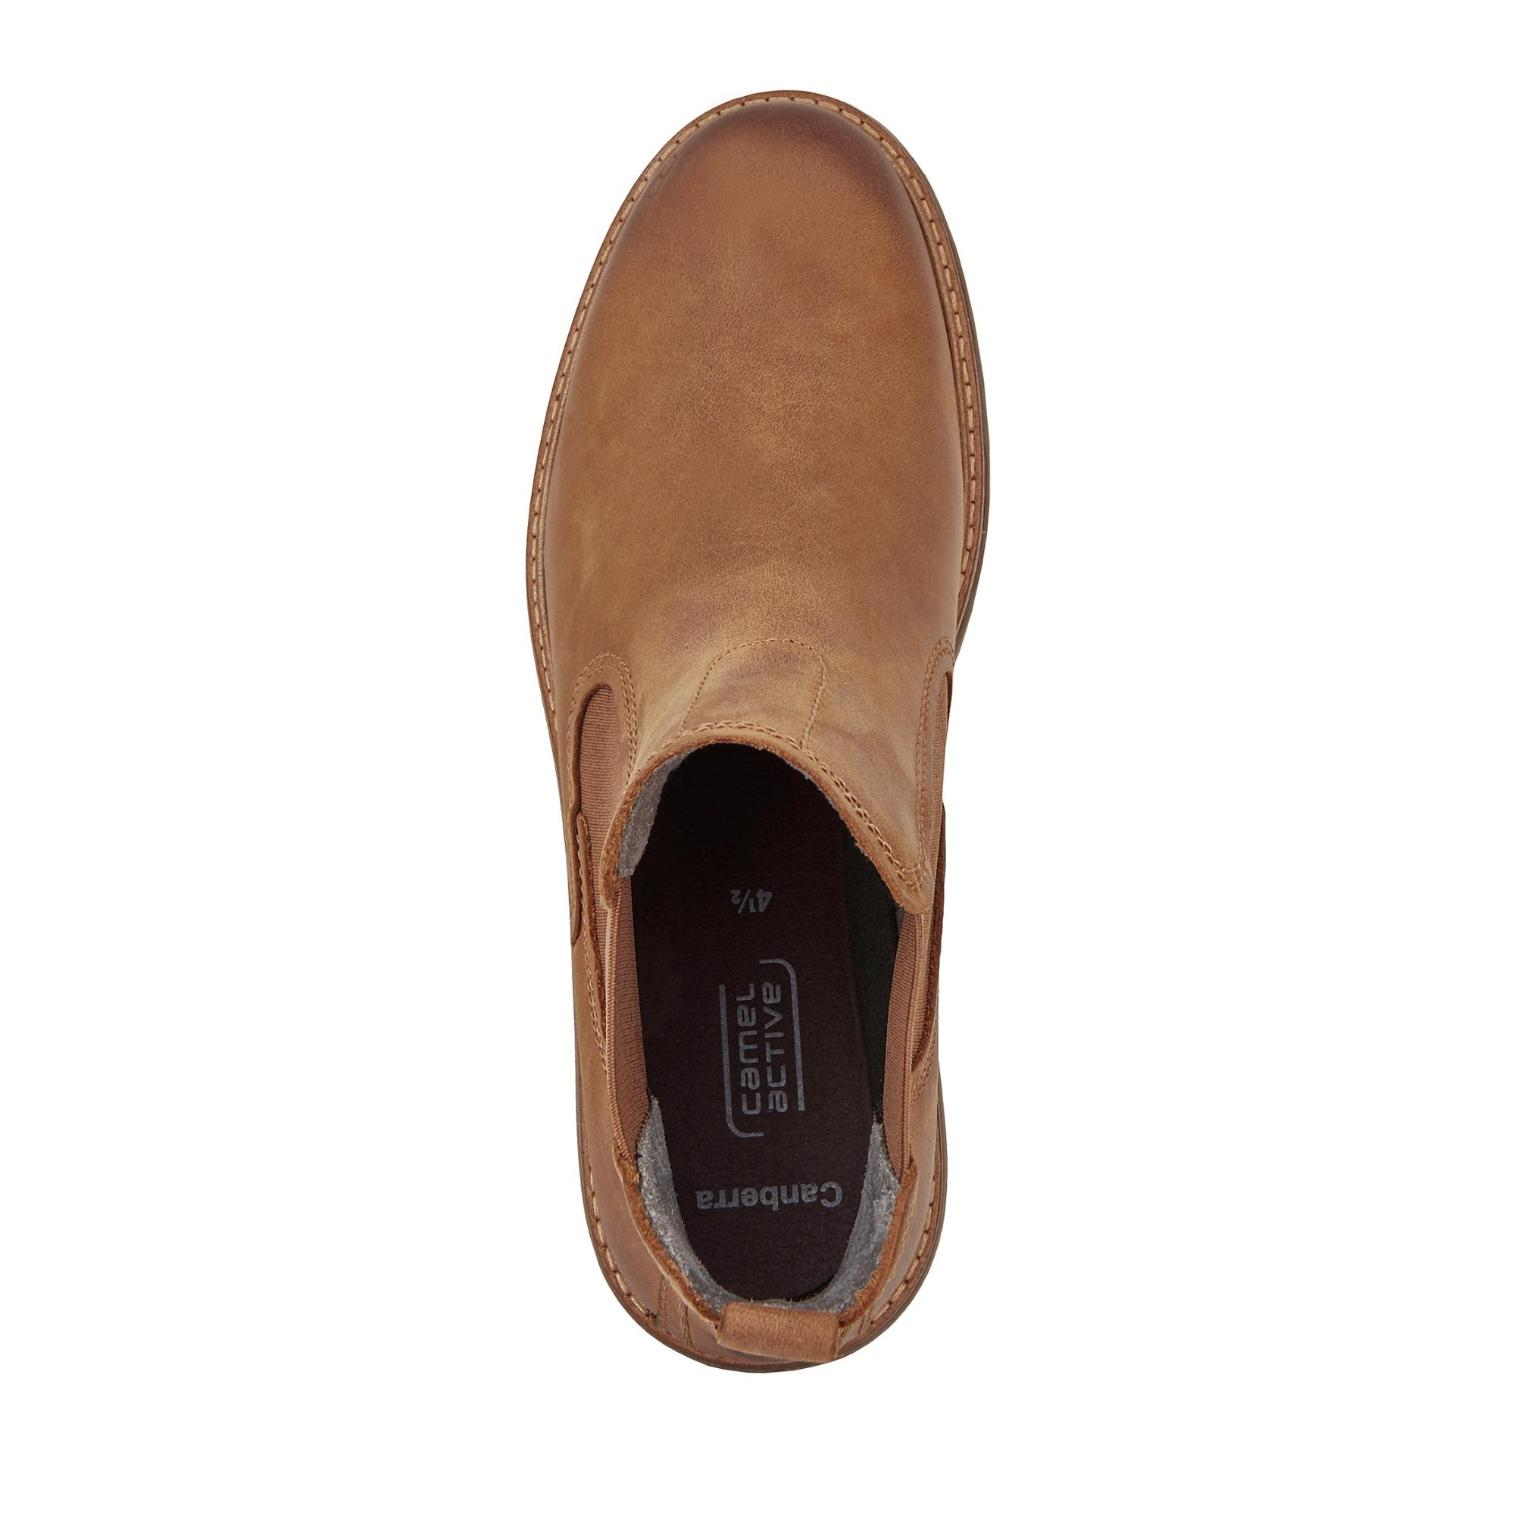 Camel Farbe Active Canberra Chelsea Boots in Farbe Camel cognac günstig online kaufen 31b370